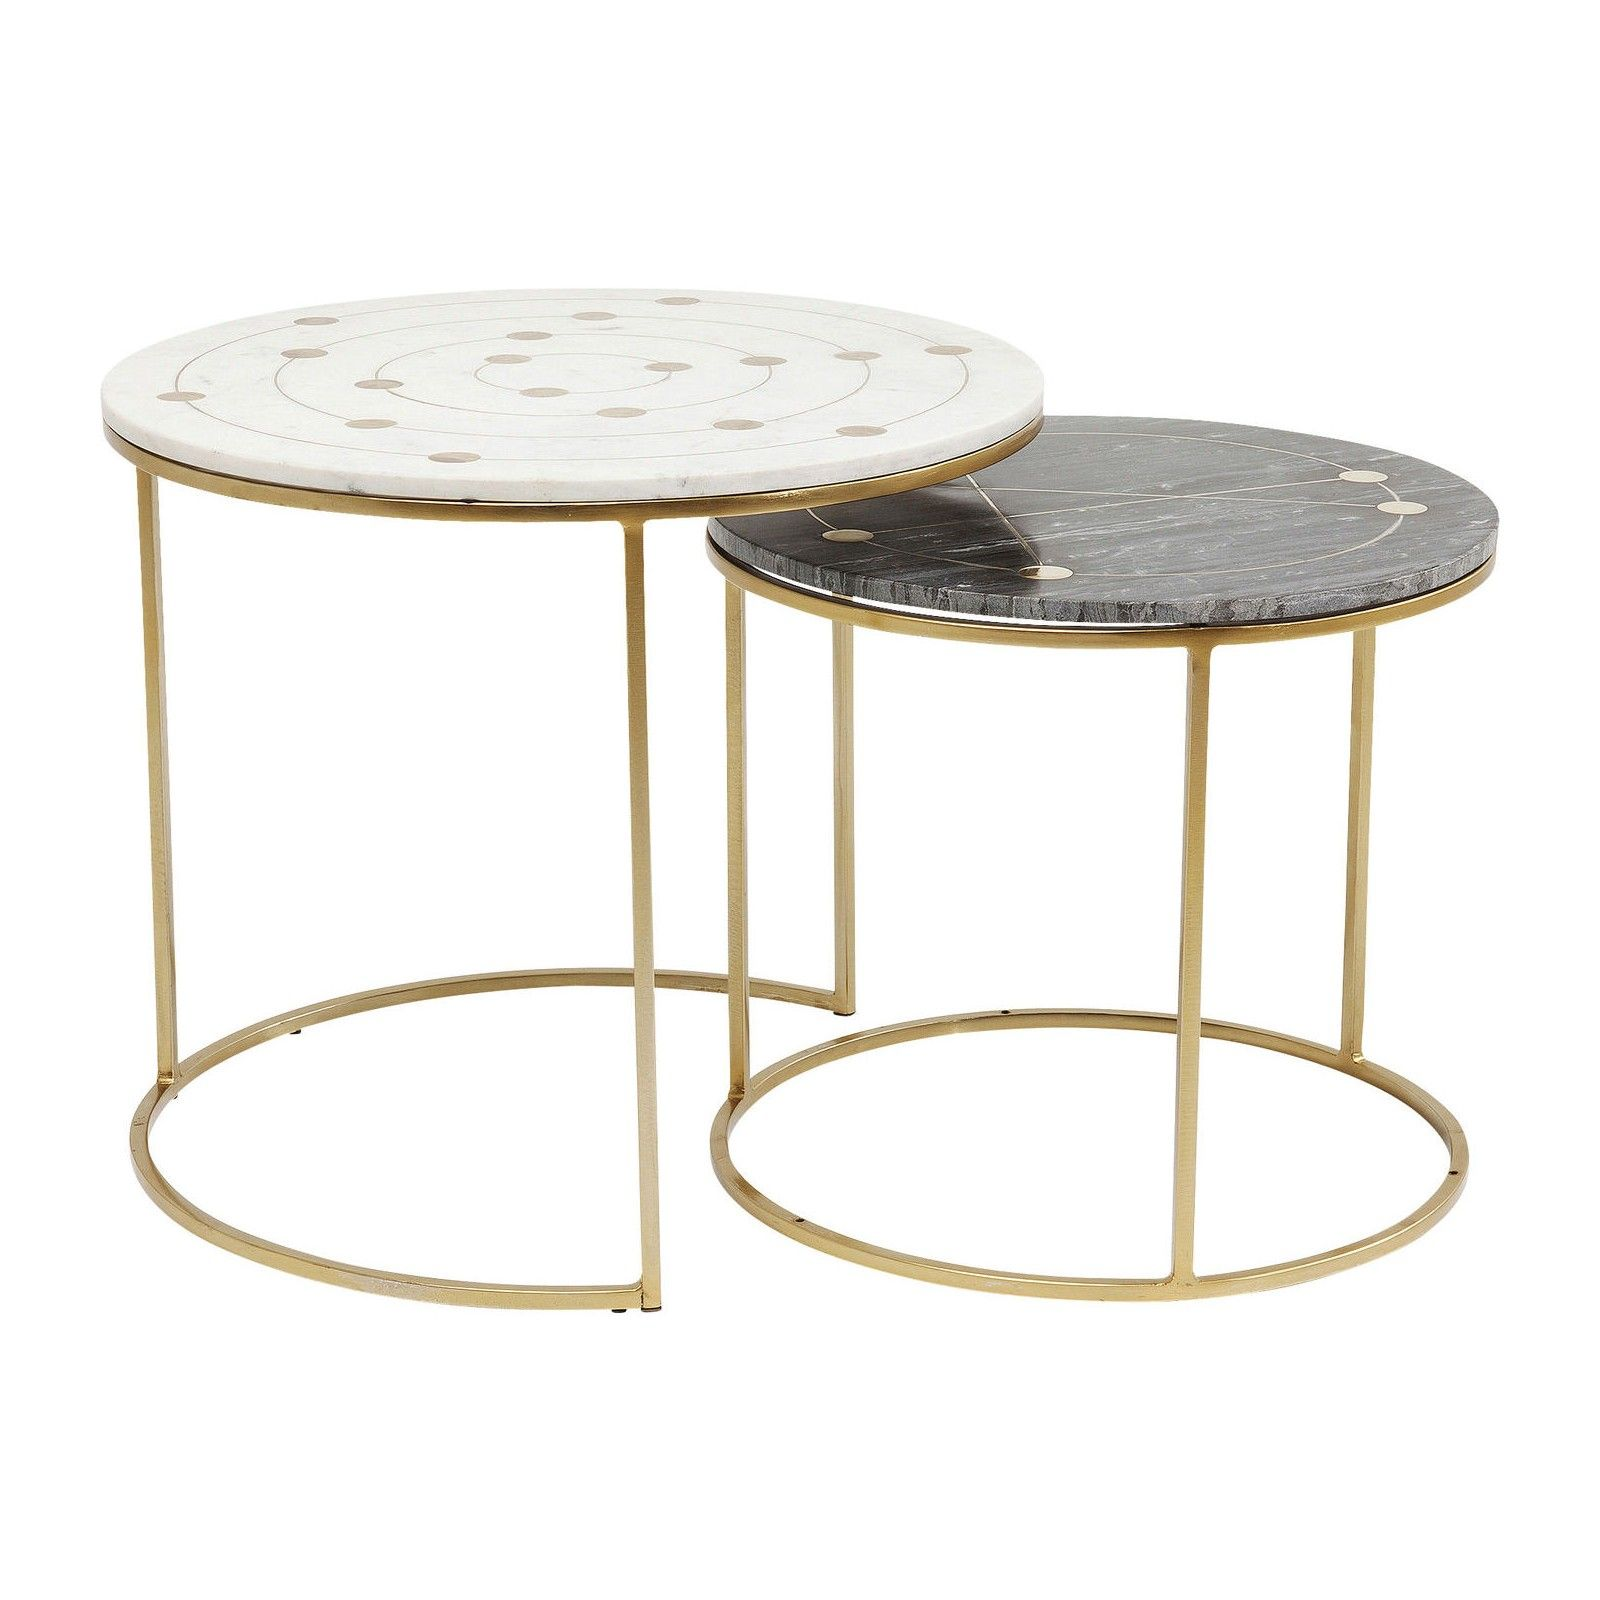 Tables D Appoint Mystic Set De 2 Kare Design Table D Appoint En Marbre Table D Appoint Kare Design